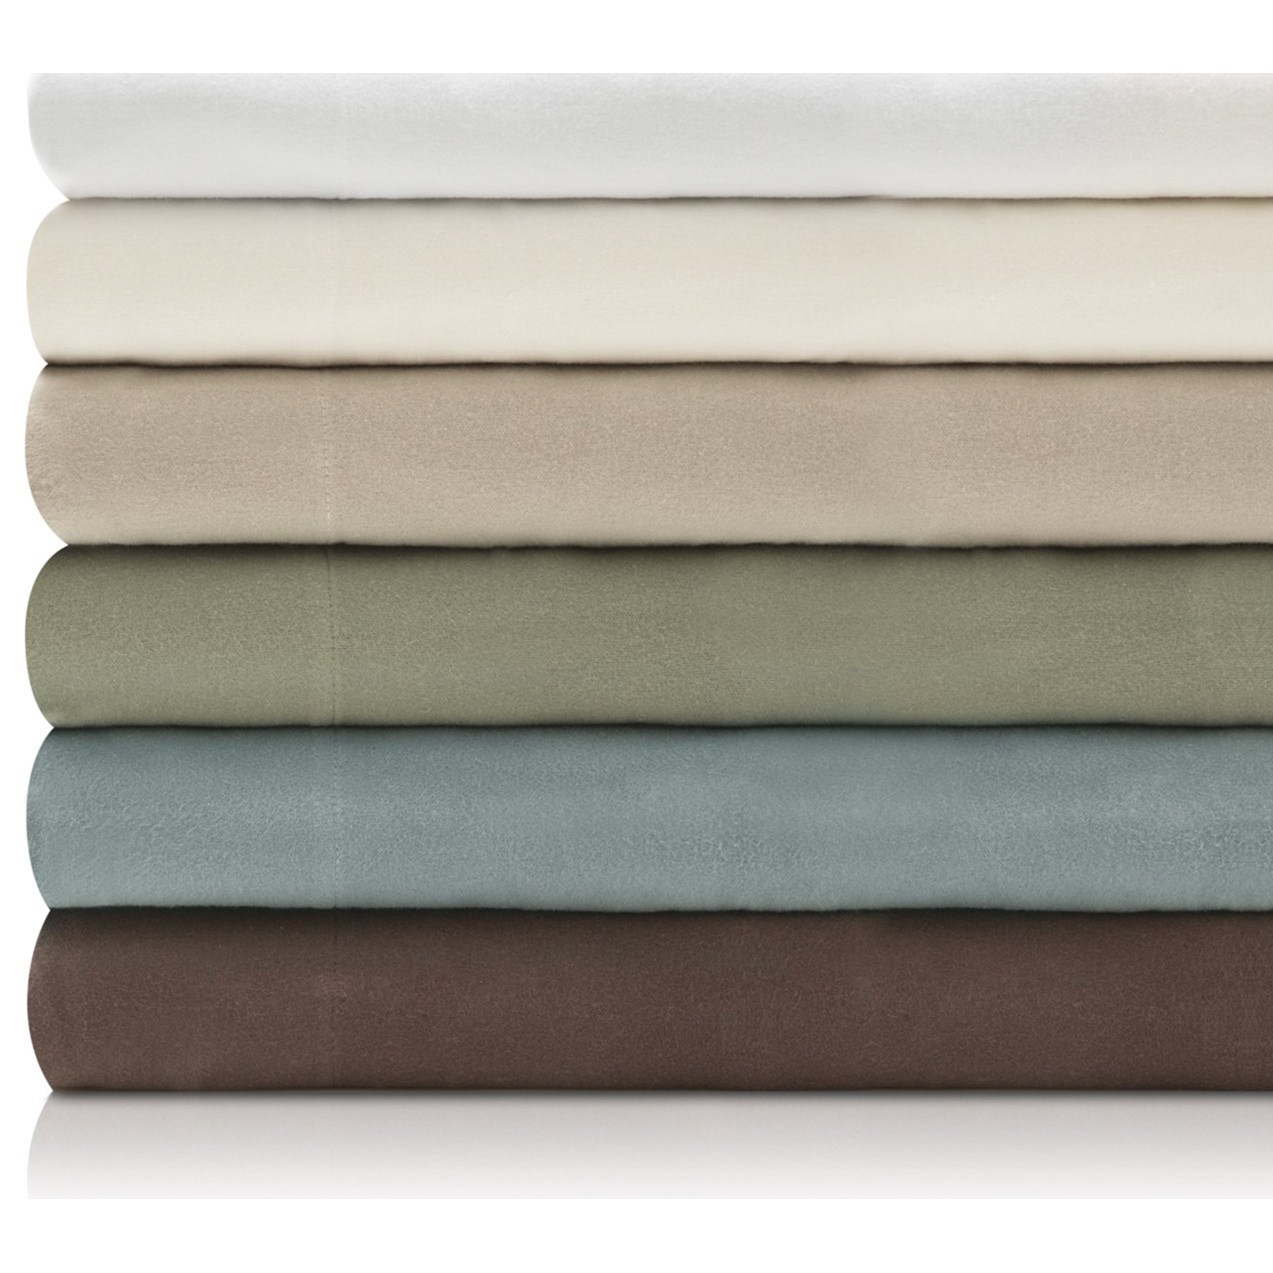 Malouf Portuguese Flannel Full Woven™ Portuguese Flannel Sheet Set - Item Number: WO19FFPAFS